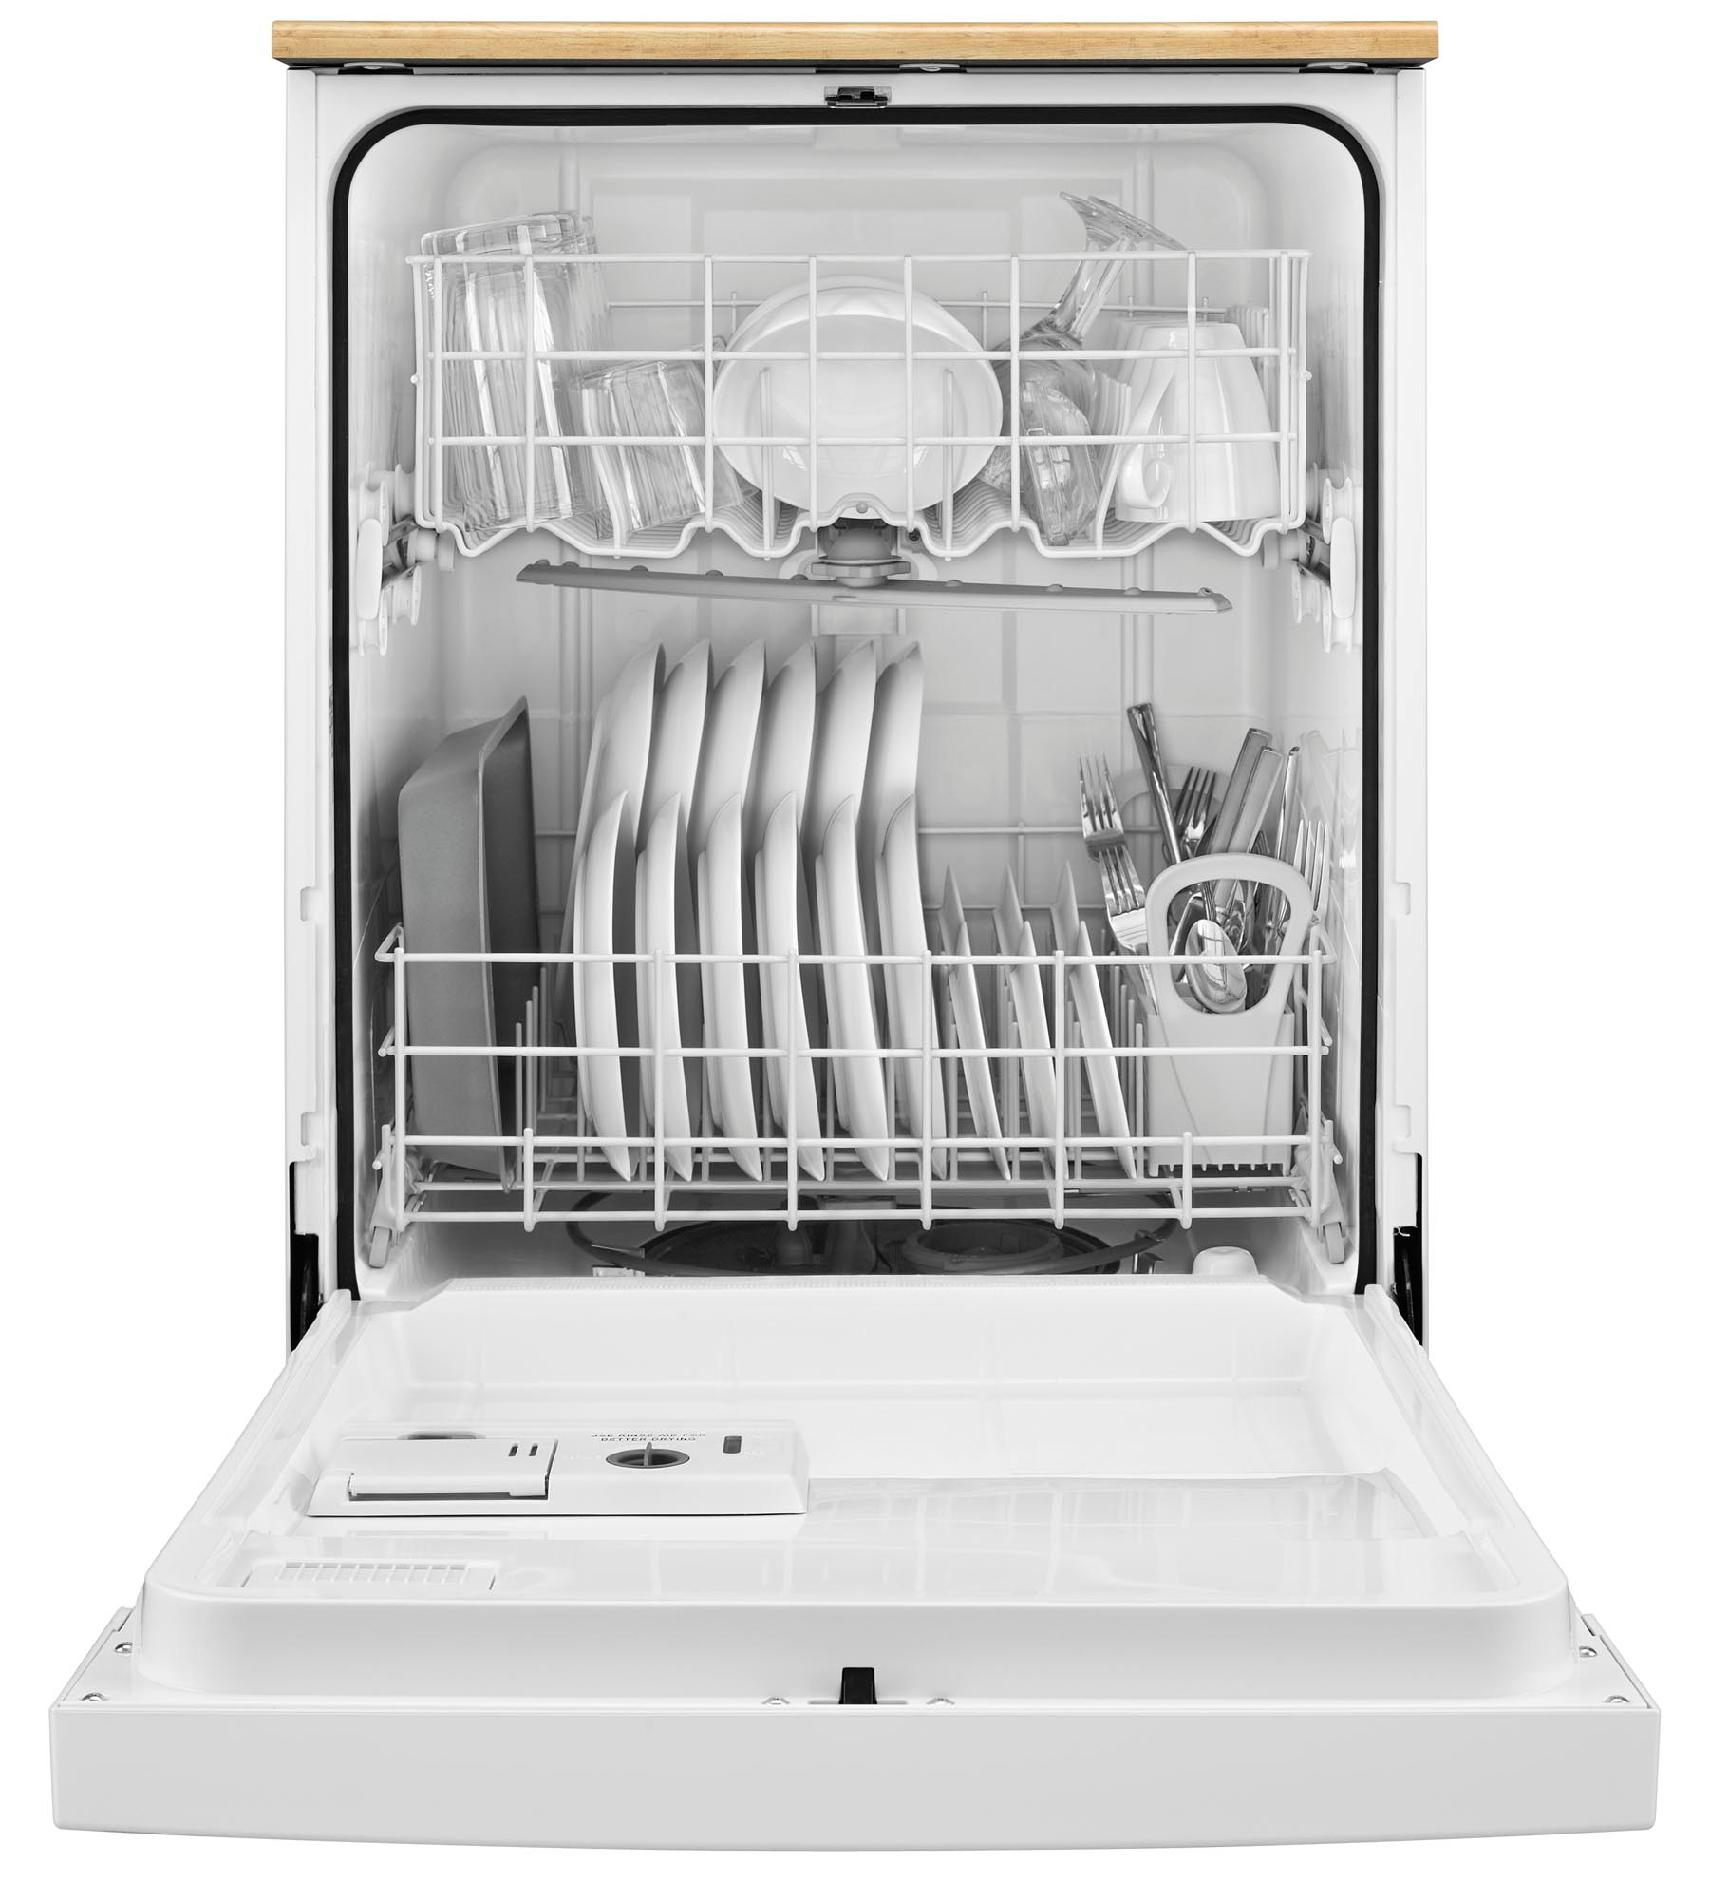 "Whirlpool WDP350PAAW 24"" Portable Dishwasher w/ 1-Hour Wash - White"